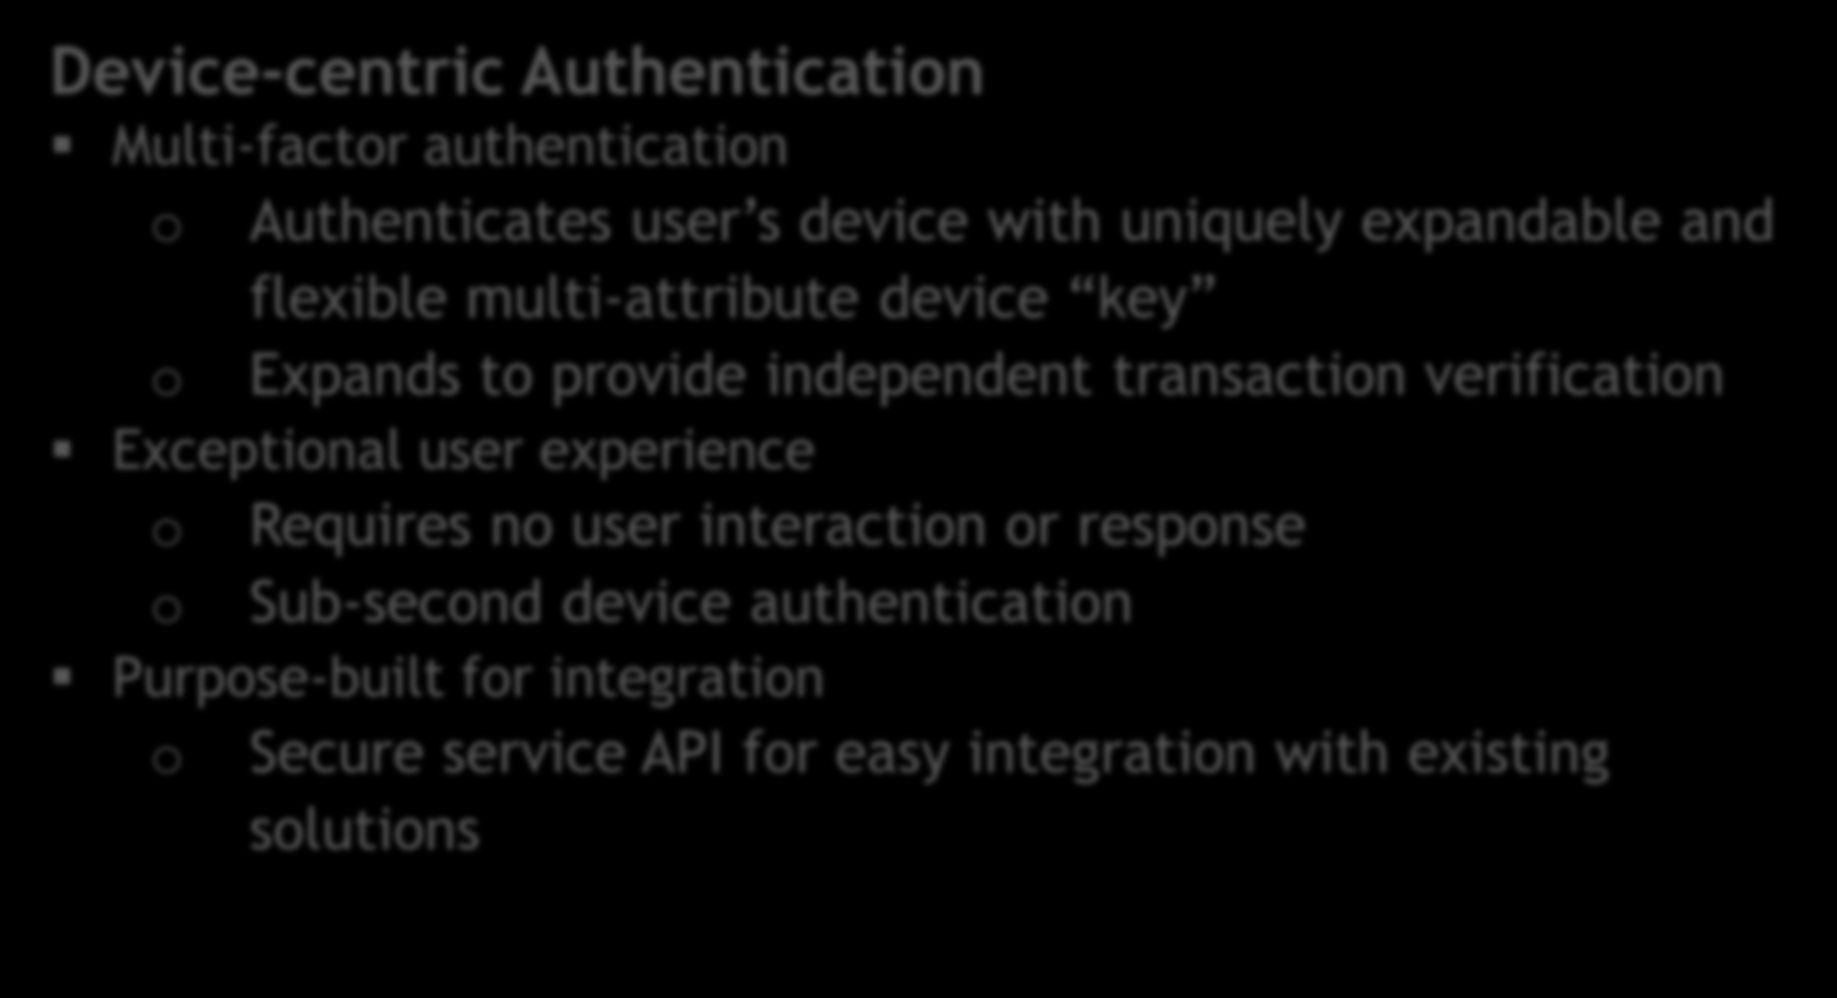 Device-centric Authentication Multi-factor authentication o Authenticates user s device with uniquely expandable and flexible multi-attribute device key o Expands to provide independent transaction